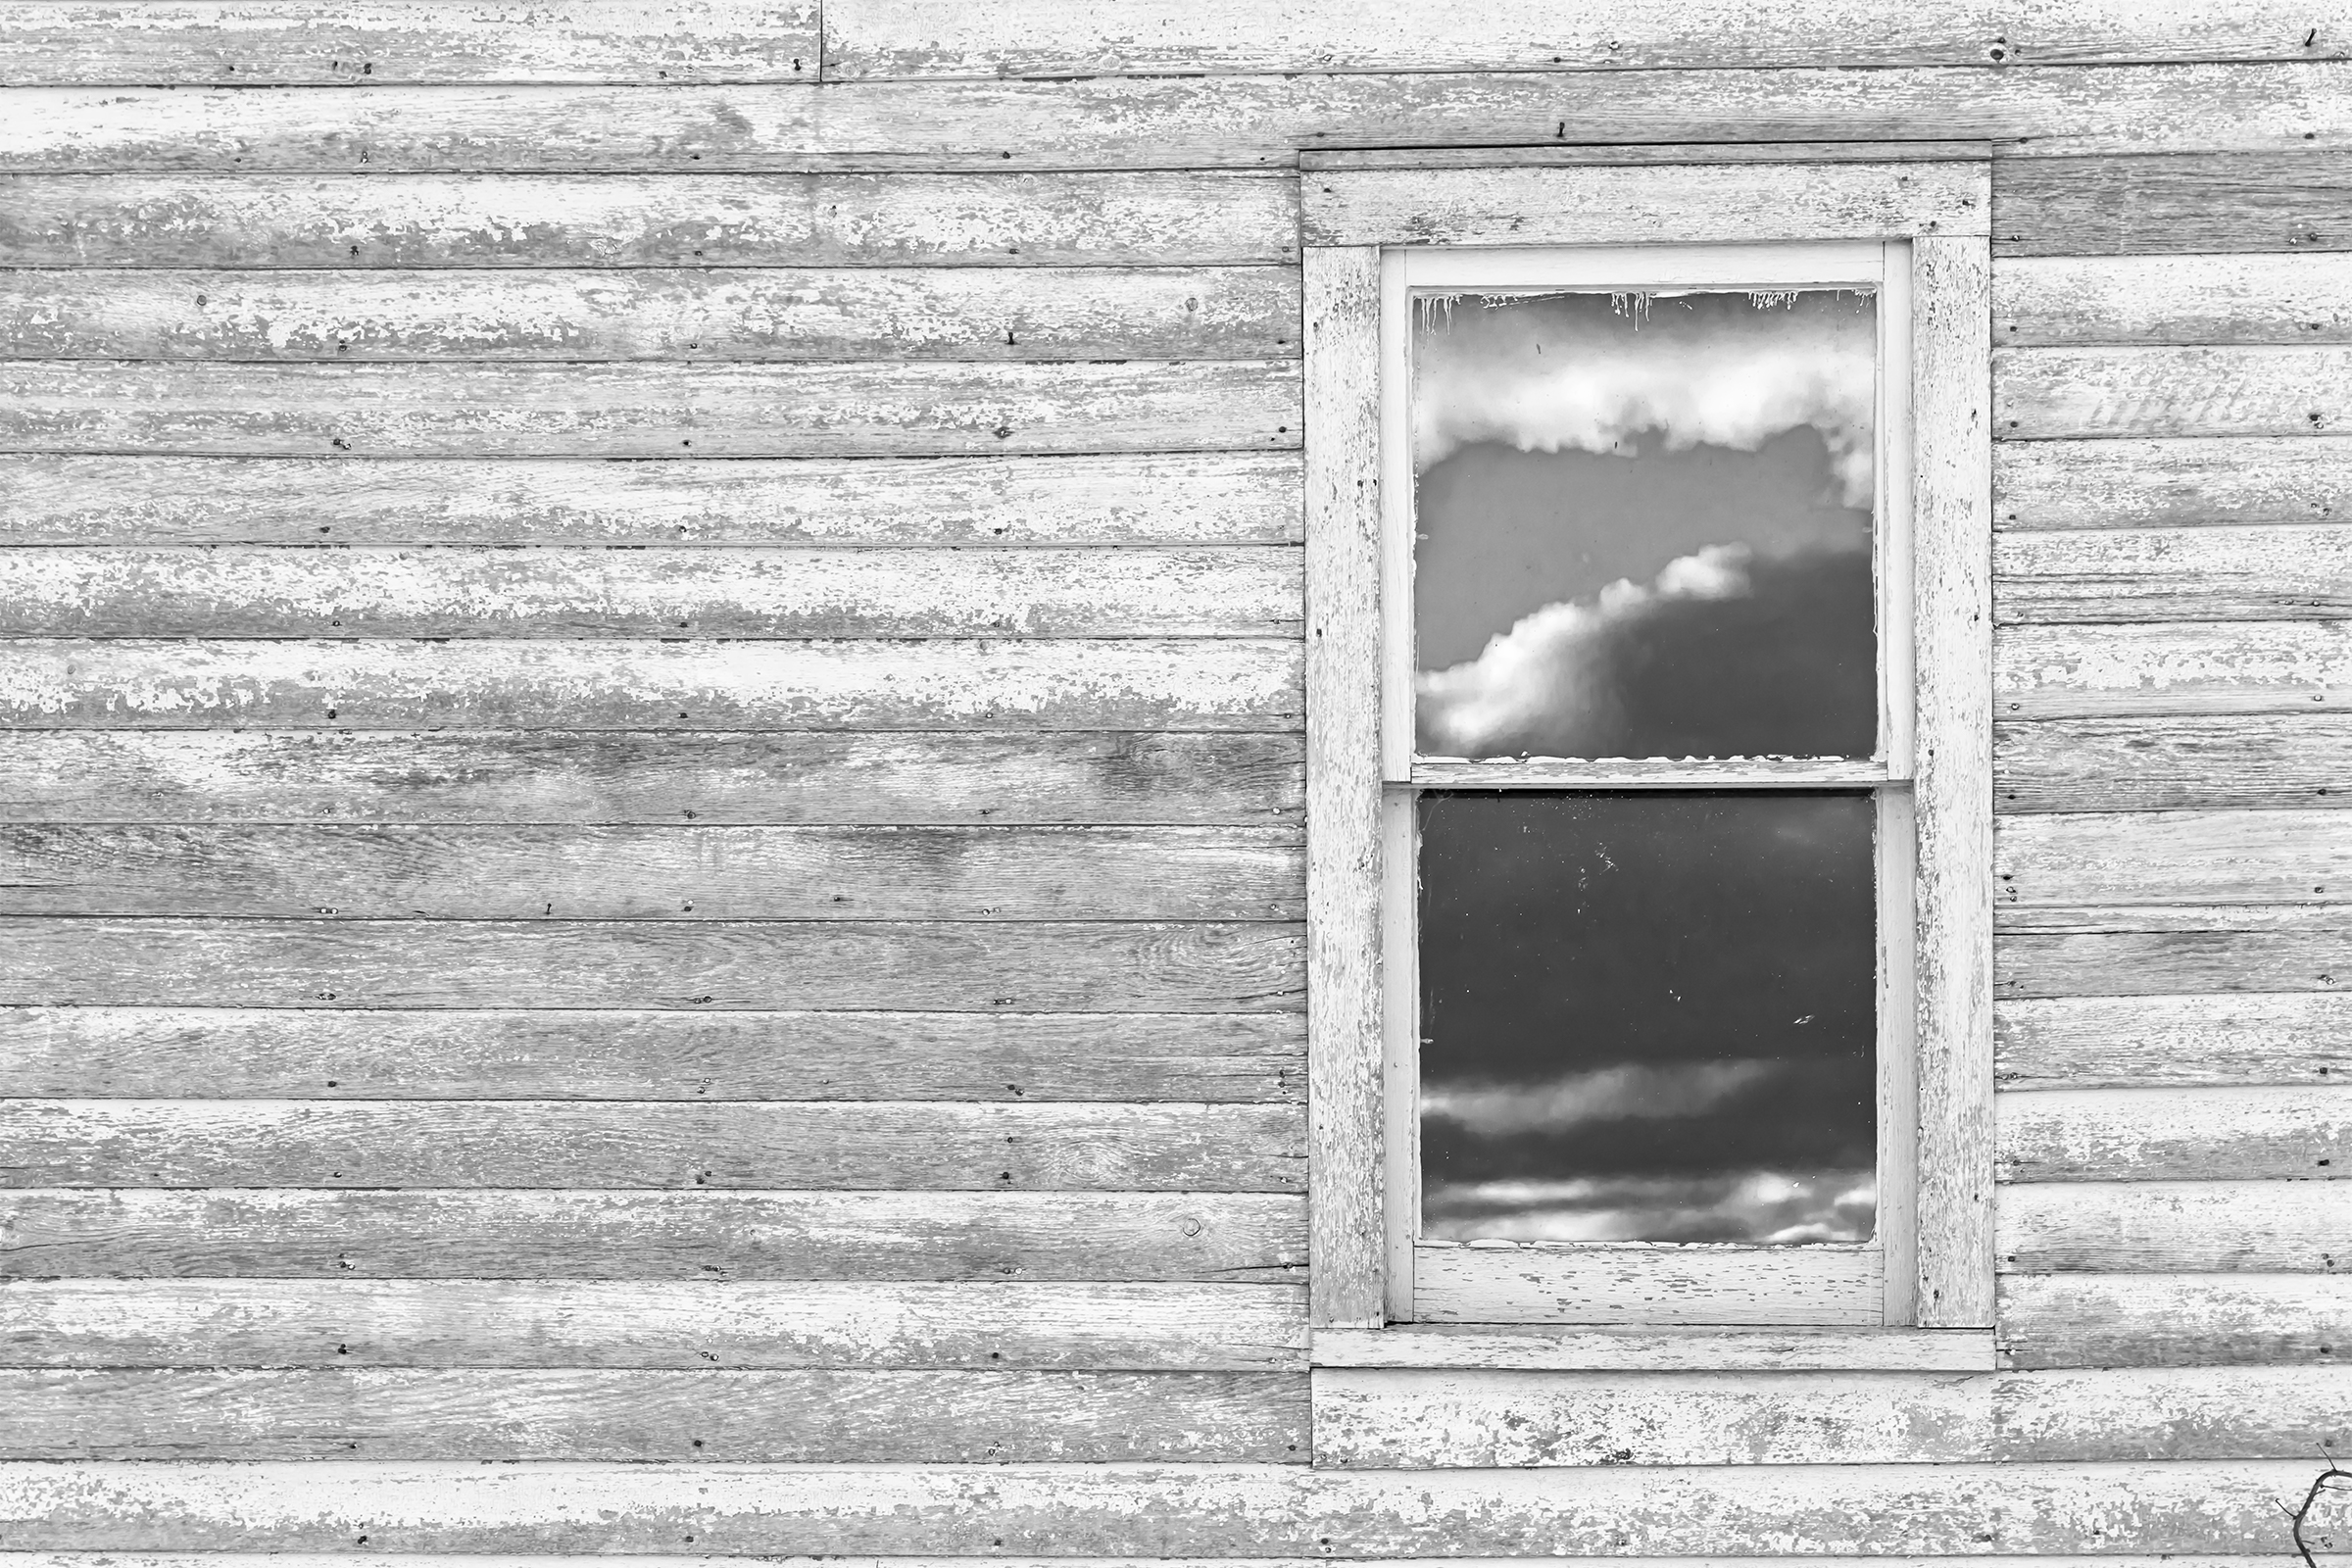 Farmstead Window X.jpg